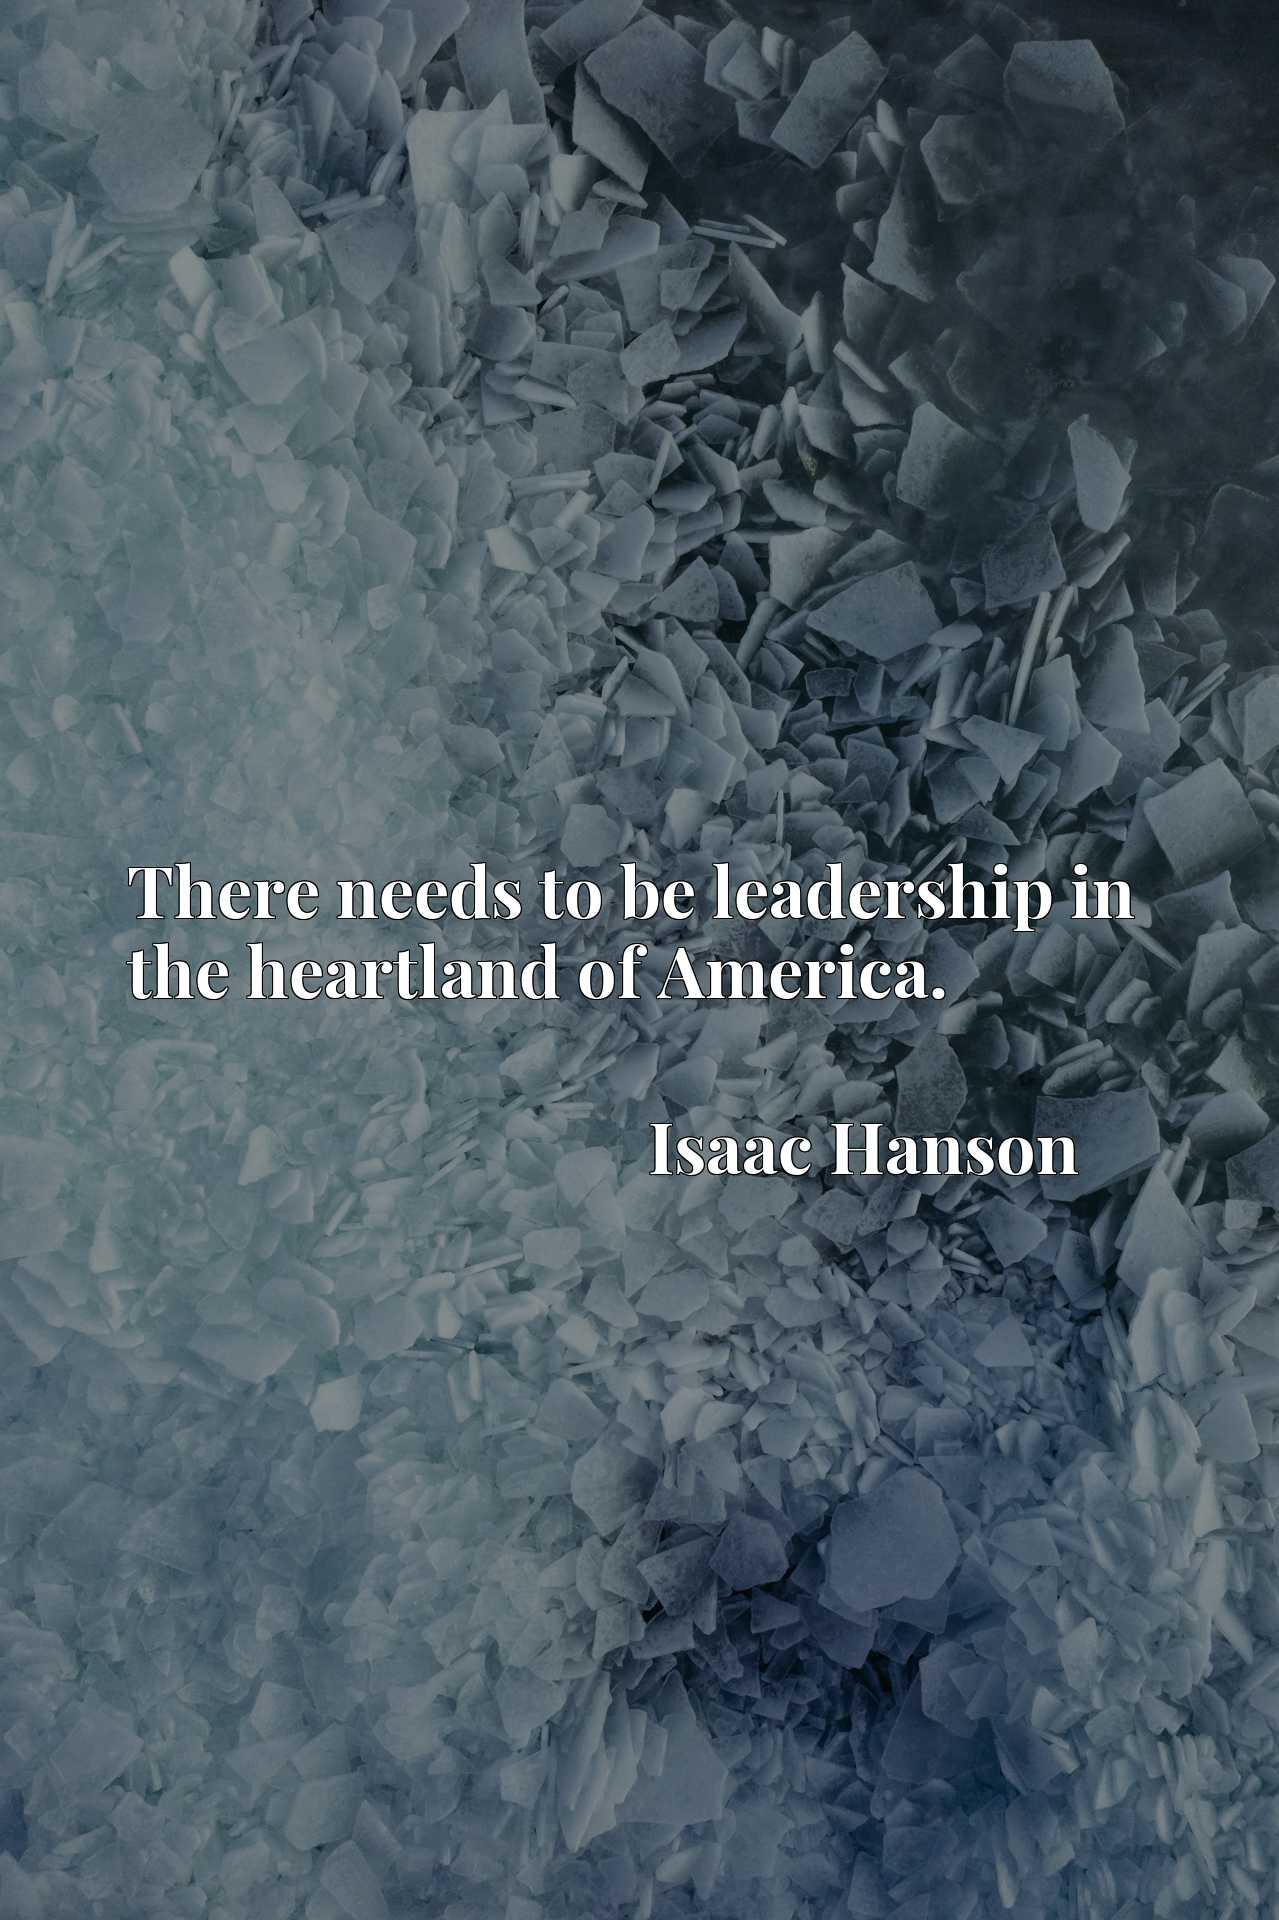 Quote Picture :There needs to be leadership in the heartland of America.